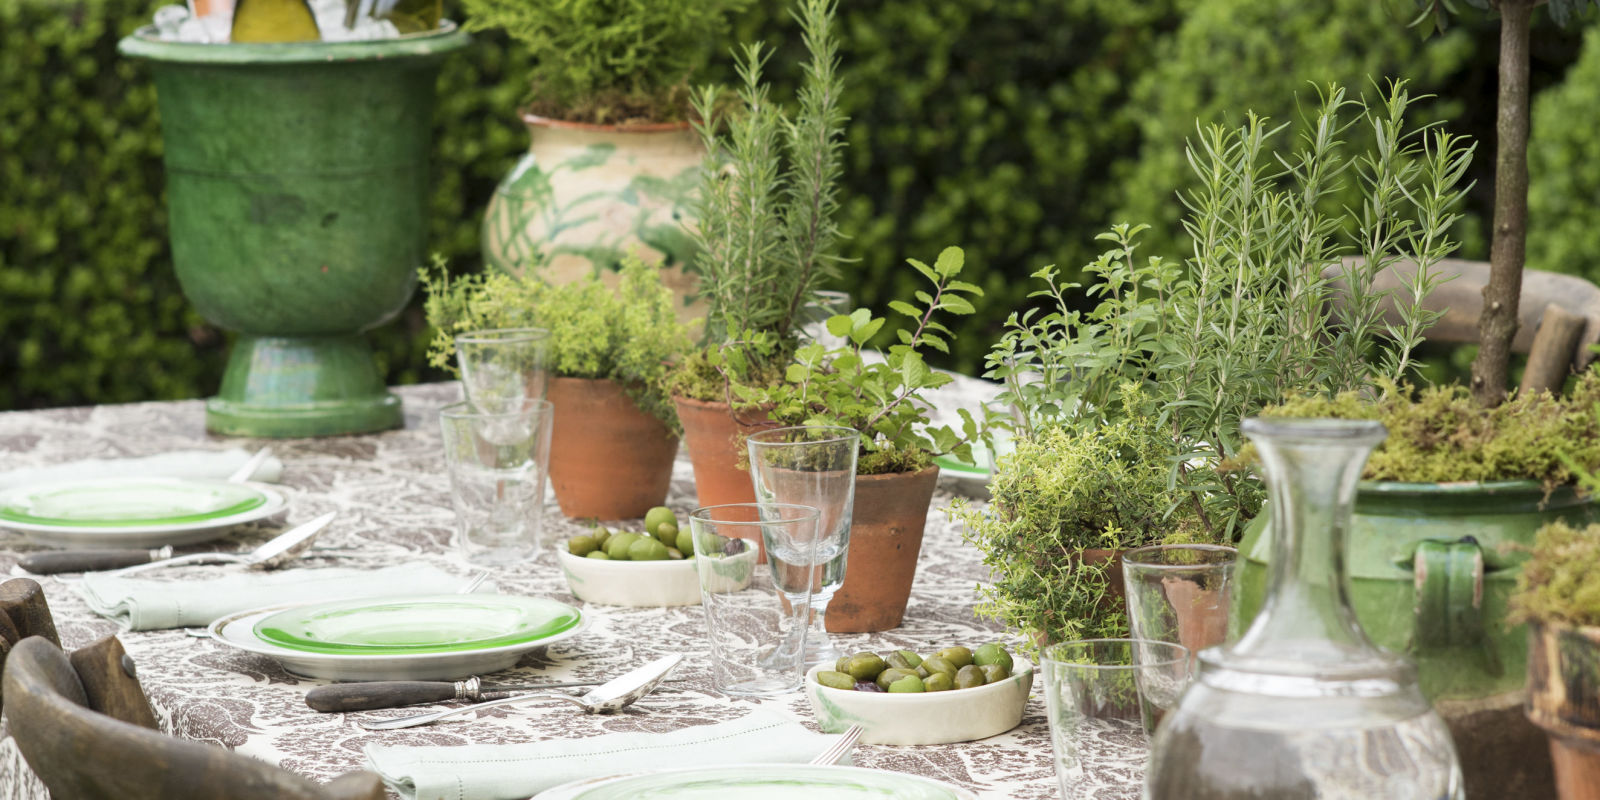 design living room furniture arrangements ideas for bookcases in rooms julia reed summer tablescape - outdoor dinner tabletop